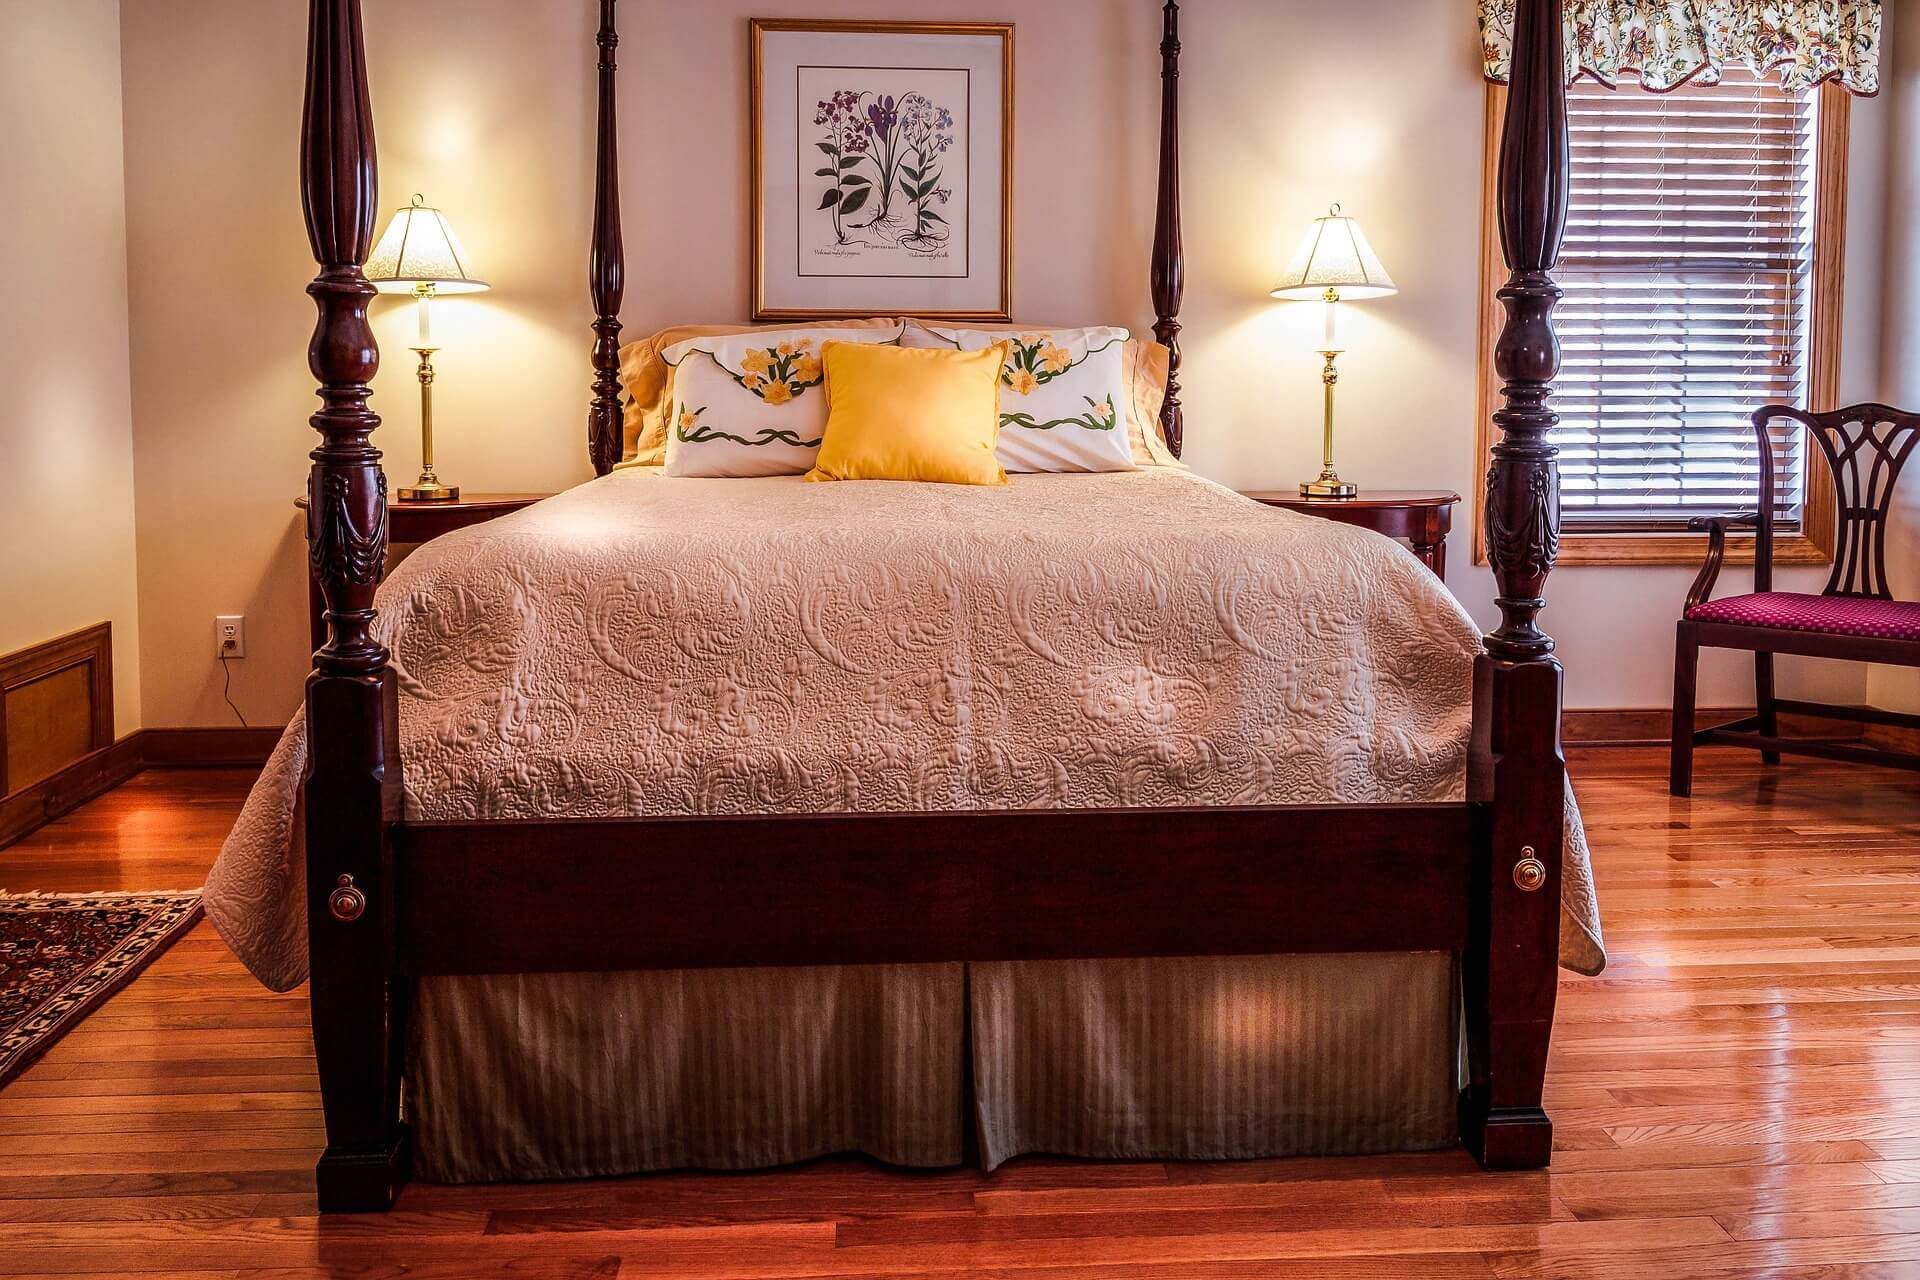 Bed Skirt to Hide Clutter